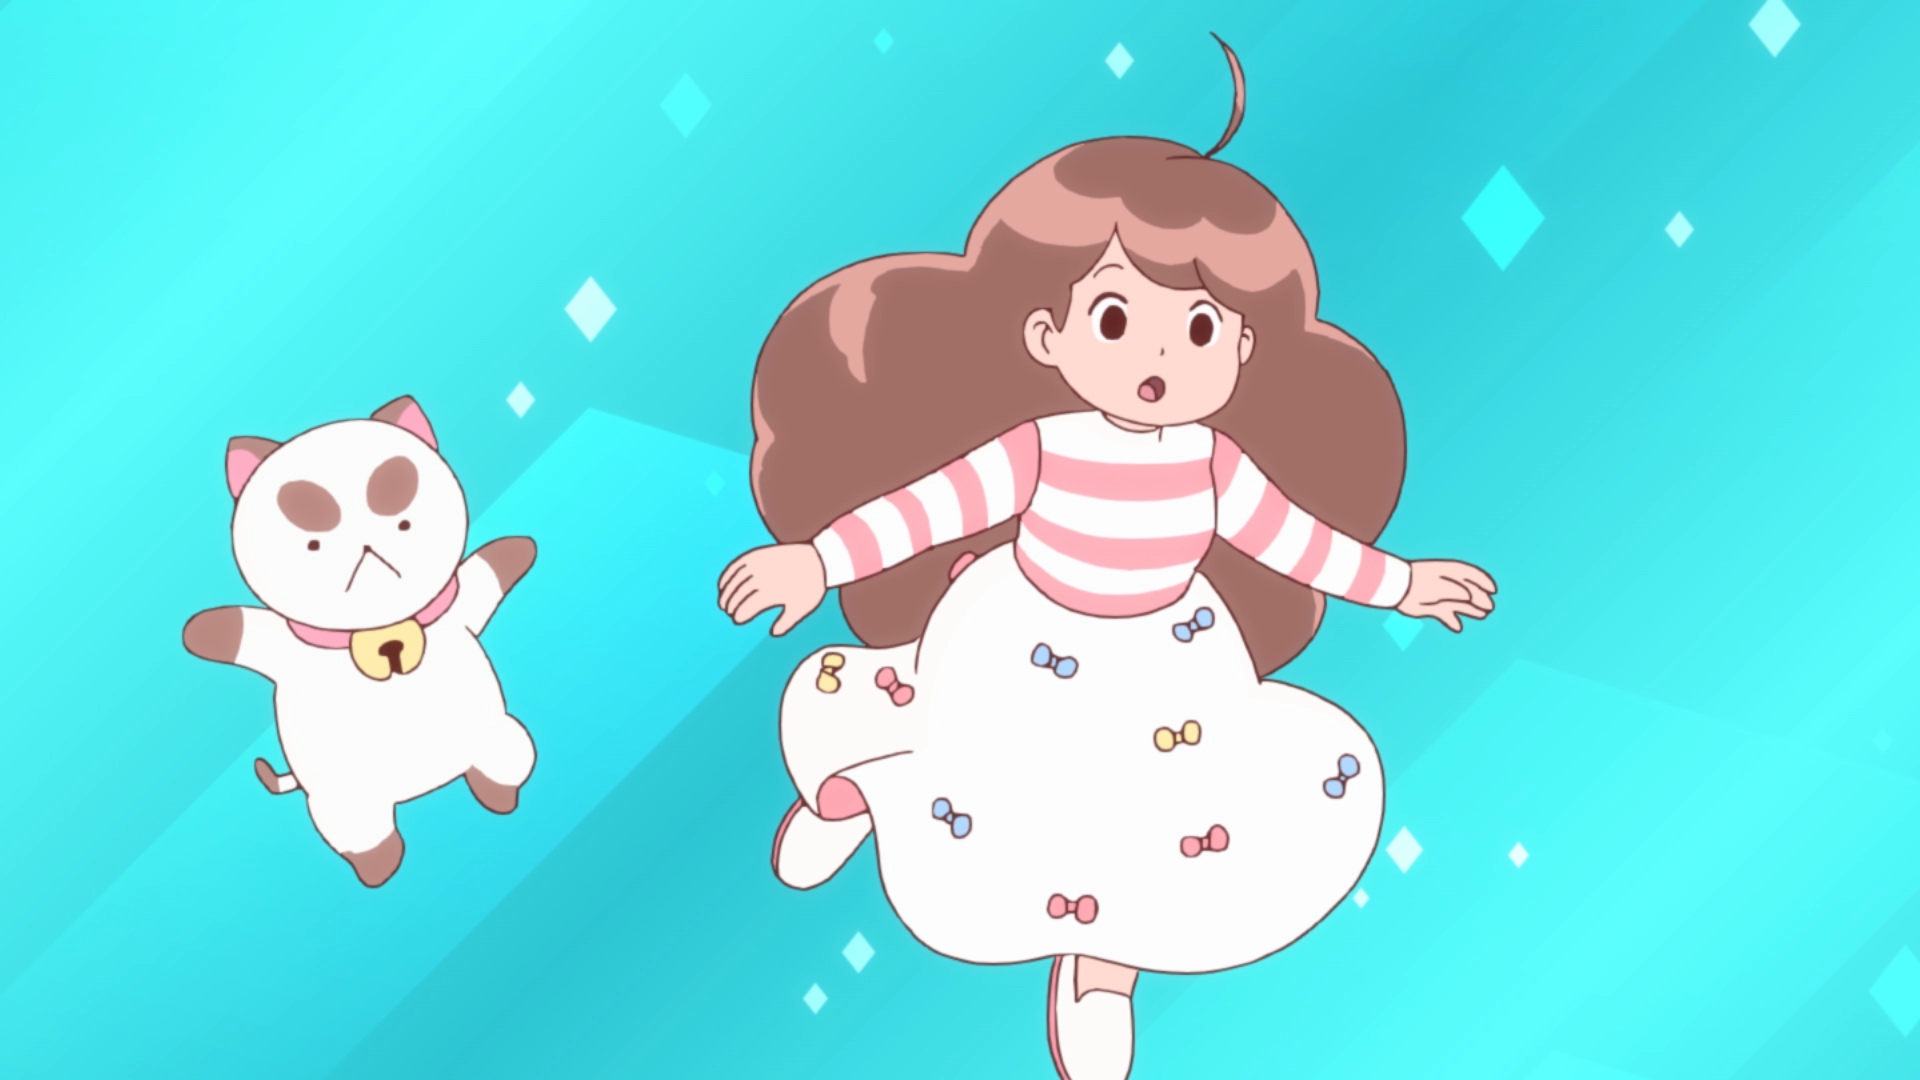 Development Bee And PuppyCat Lands Series The Boy Scares Up Sequel Night Of Comet Floats Remake Roundup